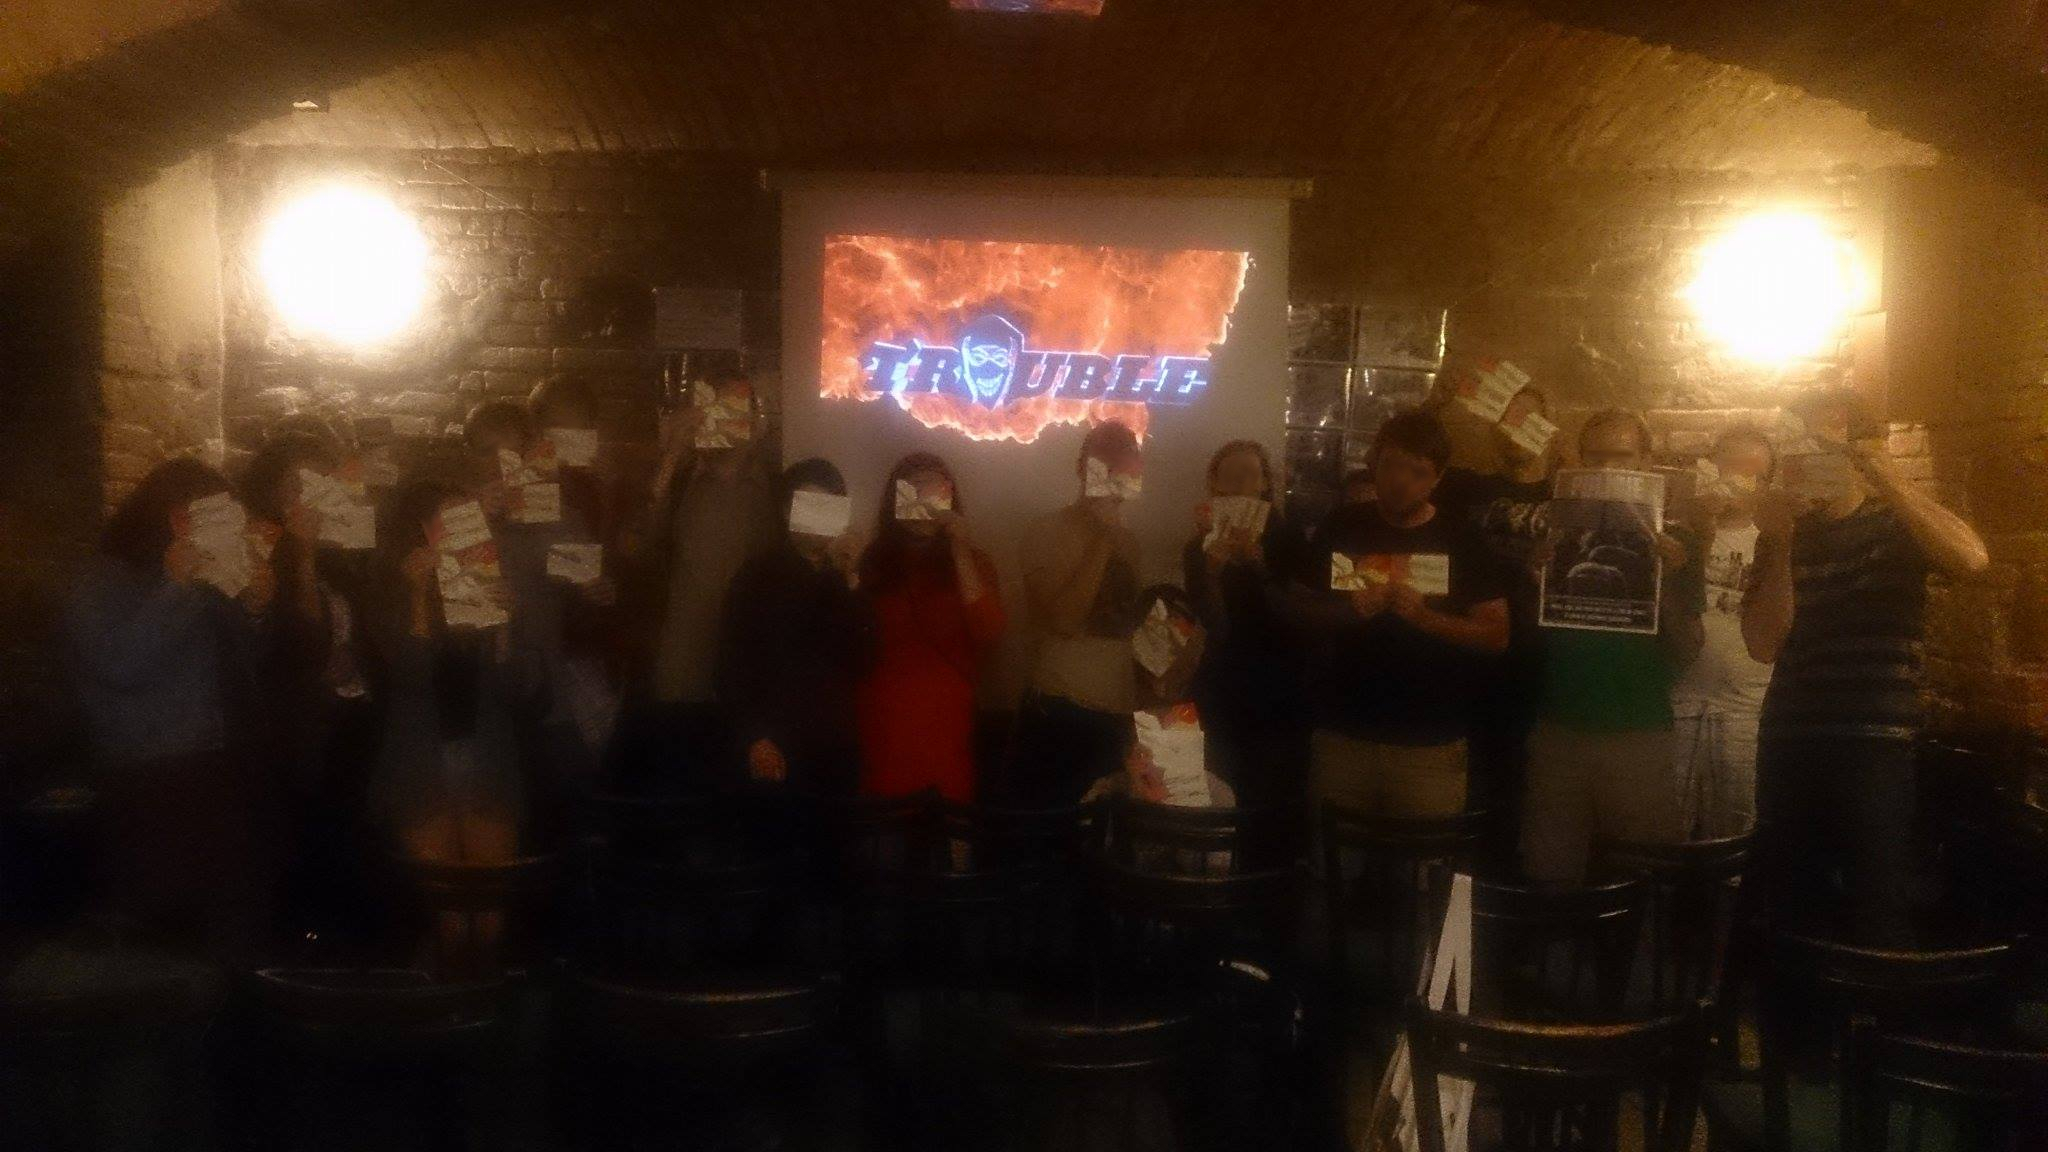 Solidarity event in Brno, Czech